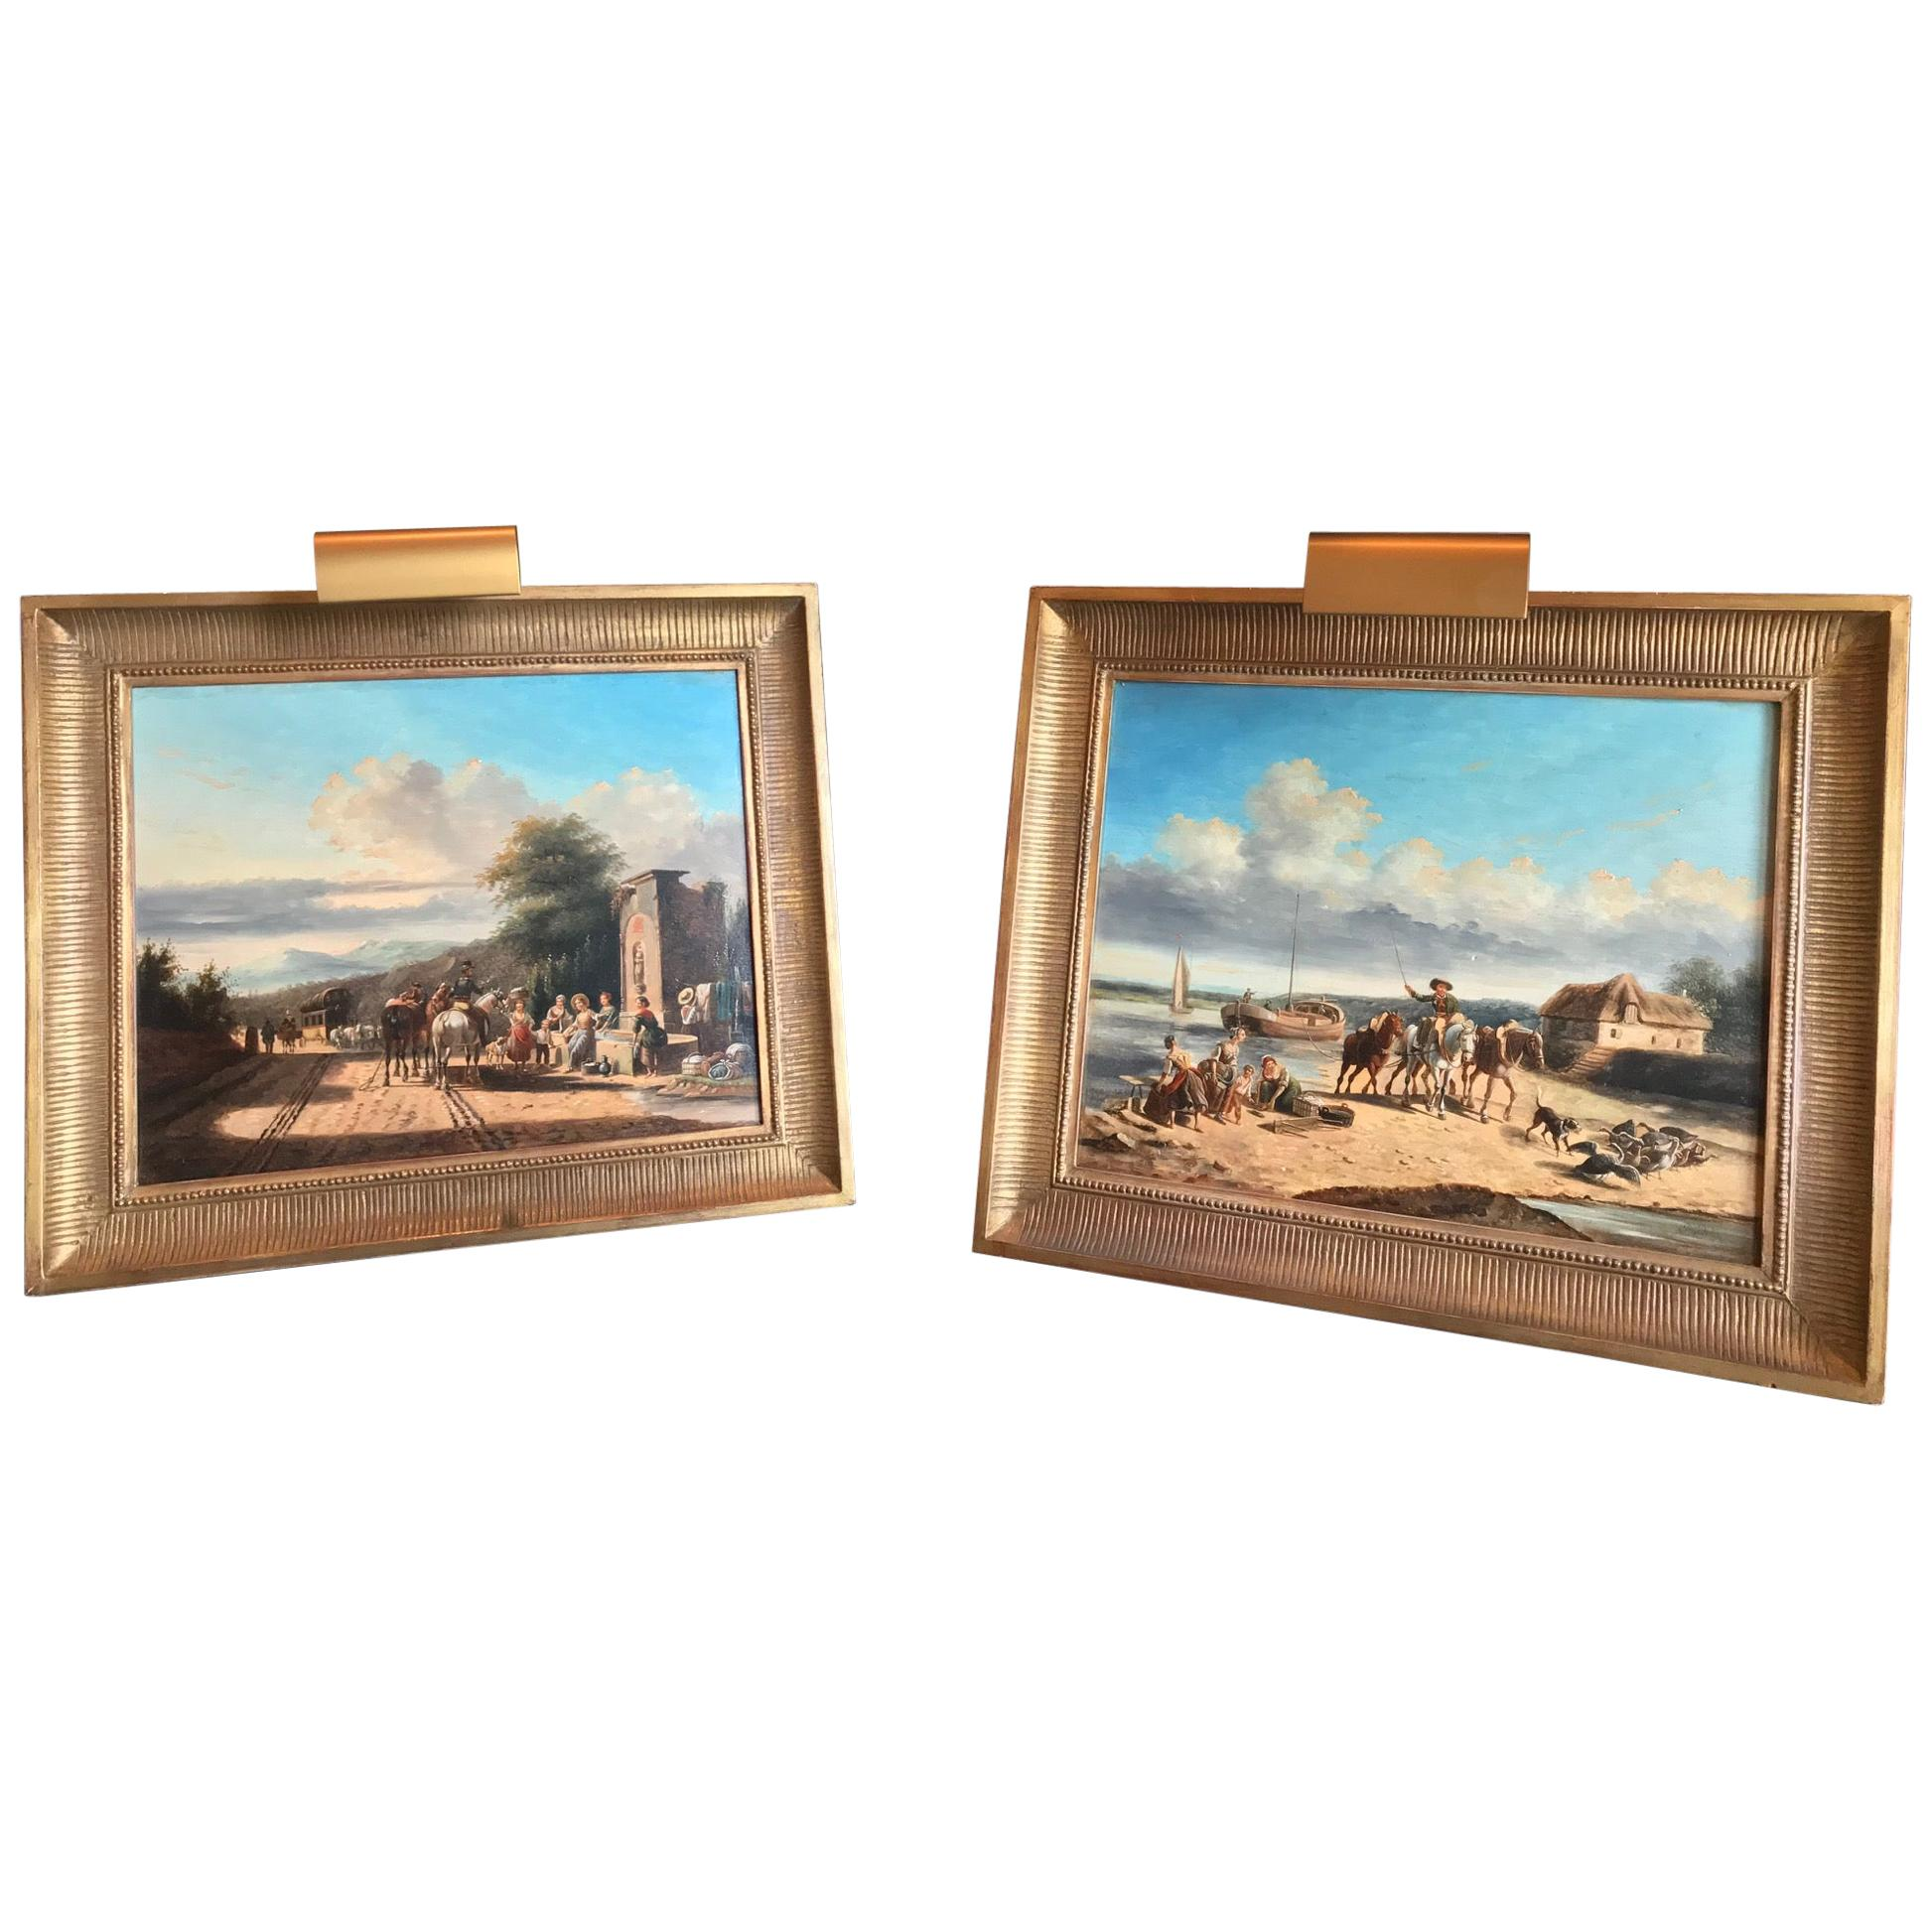 Oil Paintings by Philippe Budelot French, 1770-1829 Old Master Landscapes, Pair